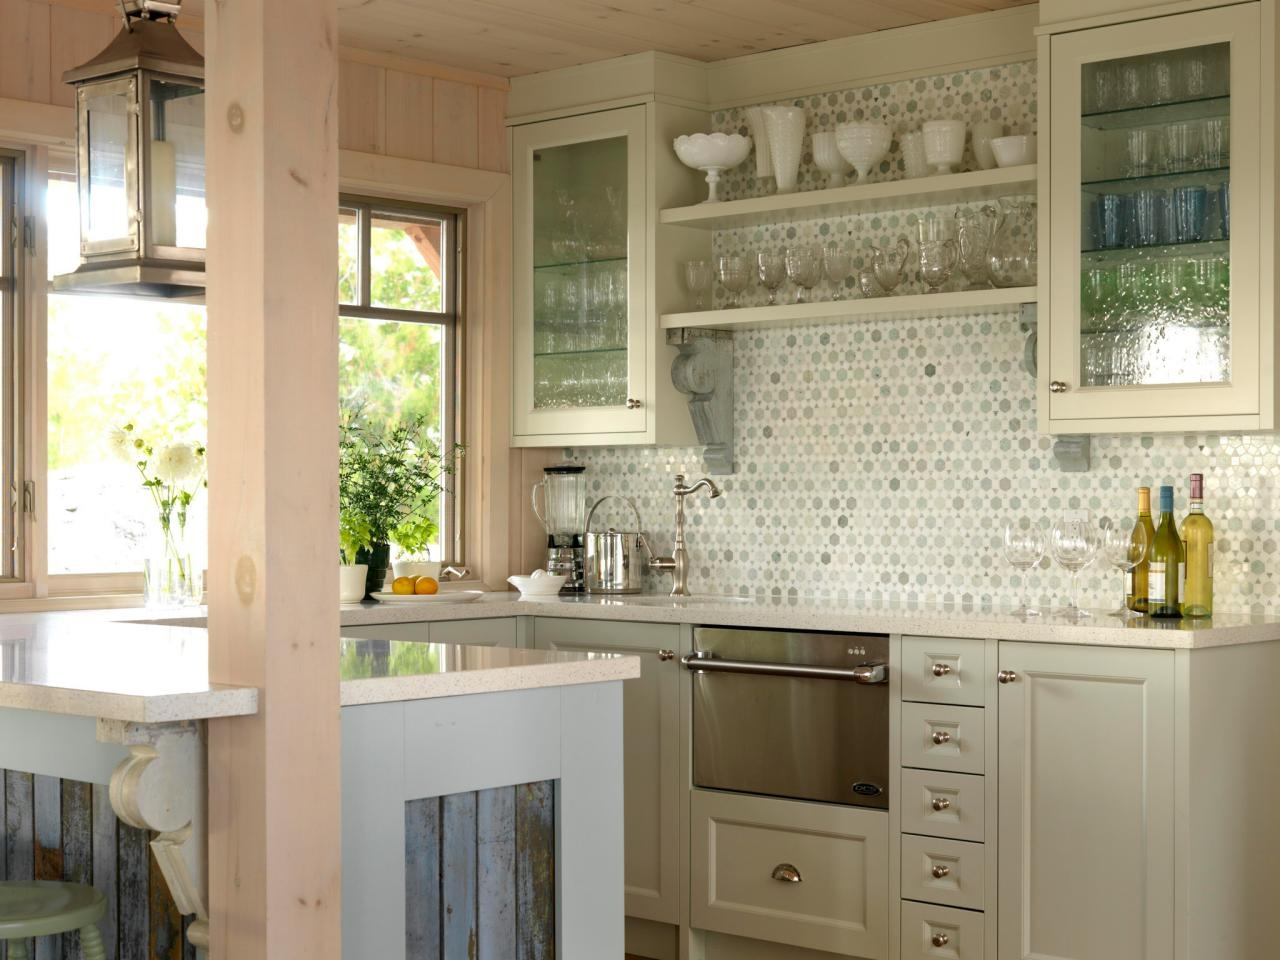 Glass Door Knobs For Kitchen Cabinets